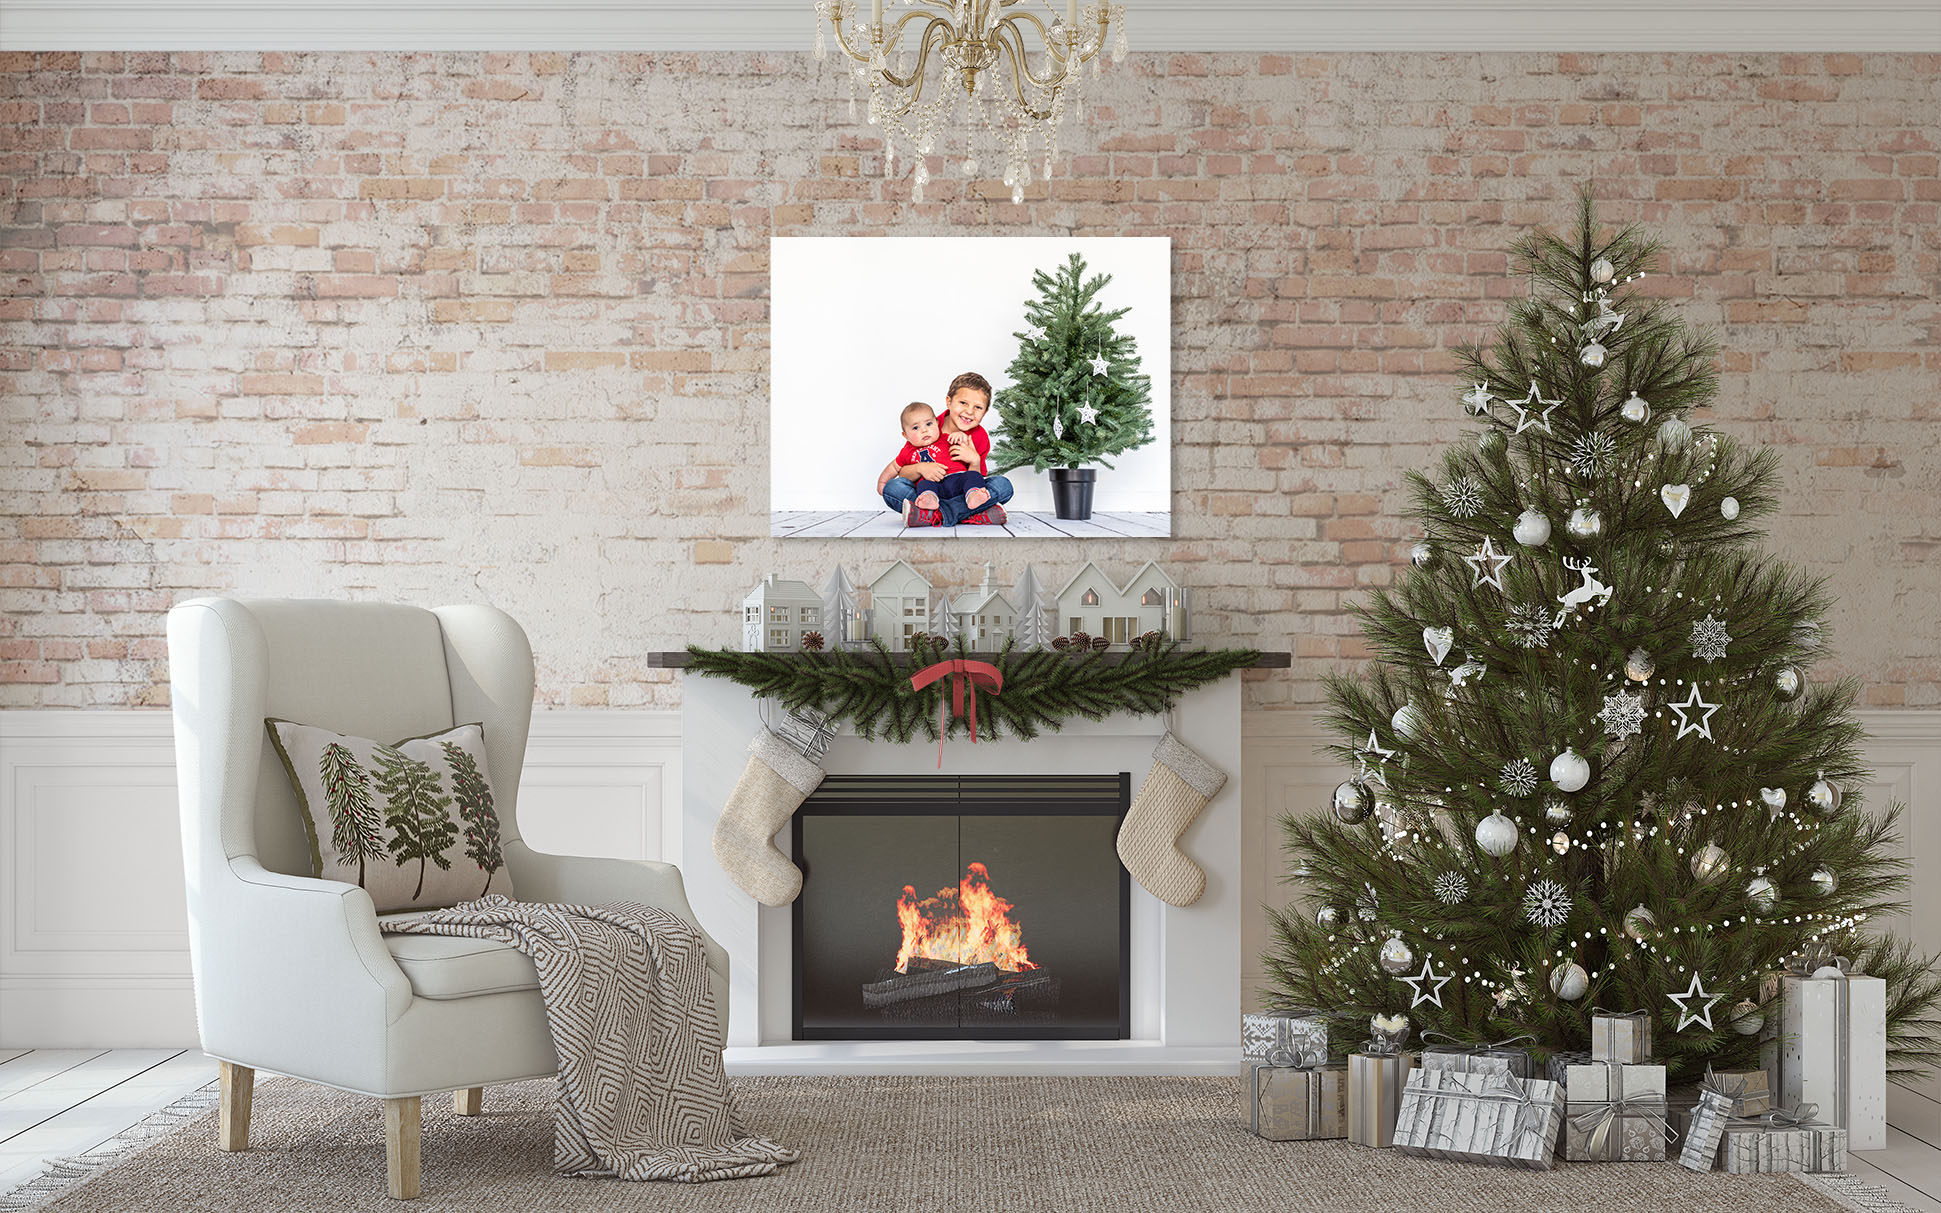 Decorate your home with holiday portraits of your family.